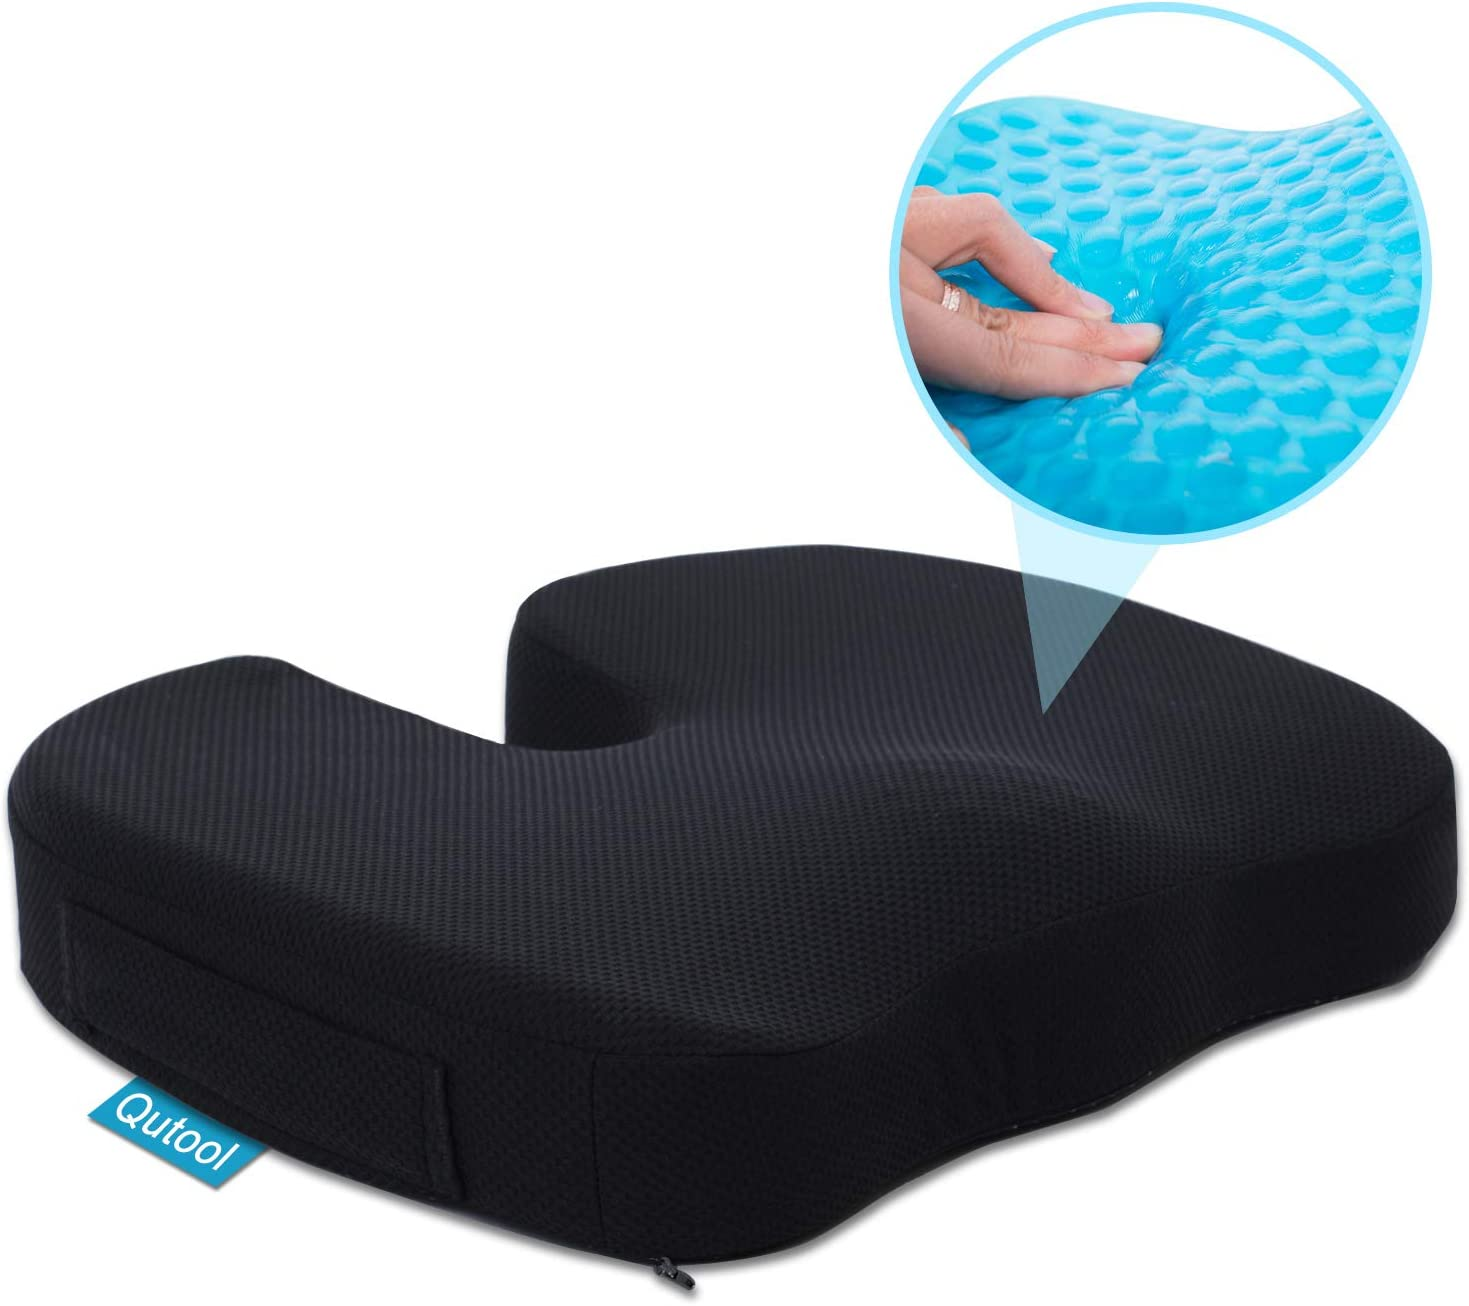 Gel Seat Cushion for Office Chair Car Wheelchair Orthopedic Memory Foam Support Pillow for Sciatica, Tailbone, Lower Back Pain Relief – Washable Breathable Cover – Non-Slip Bottom